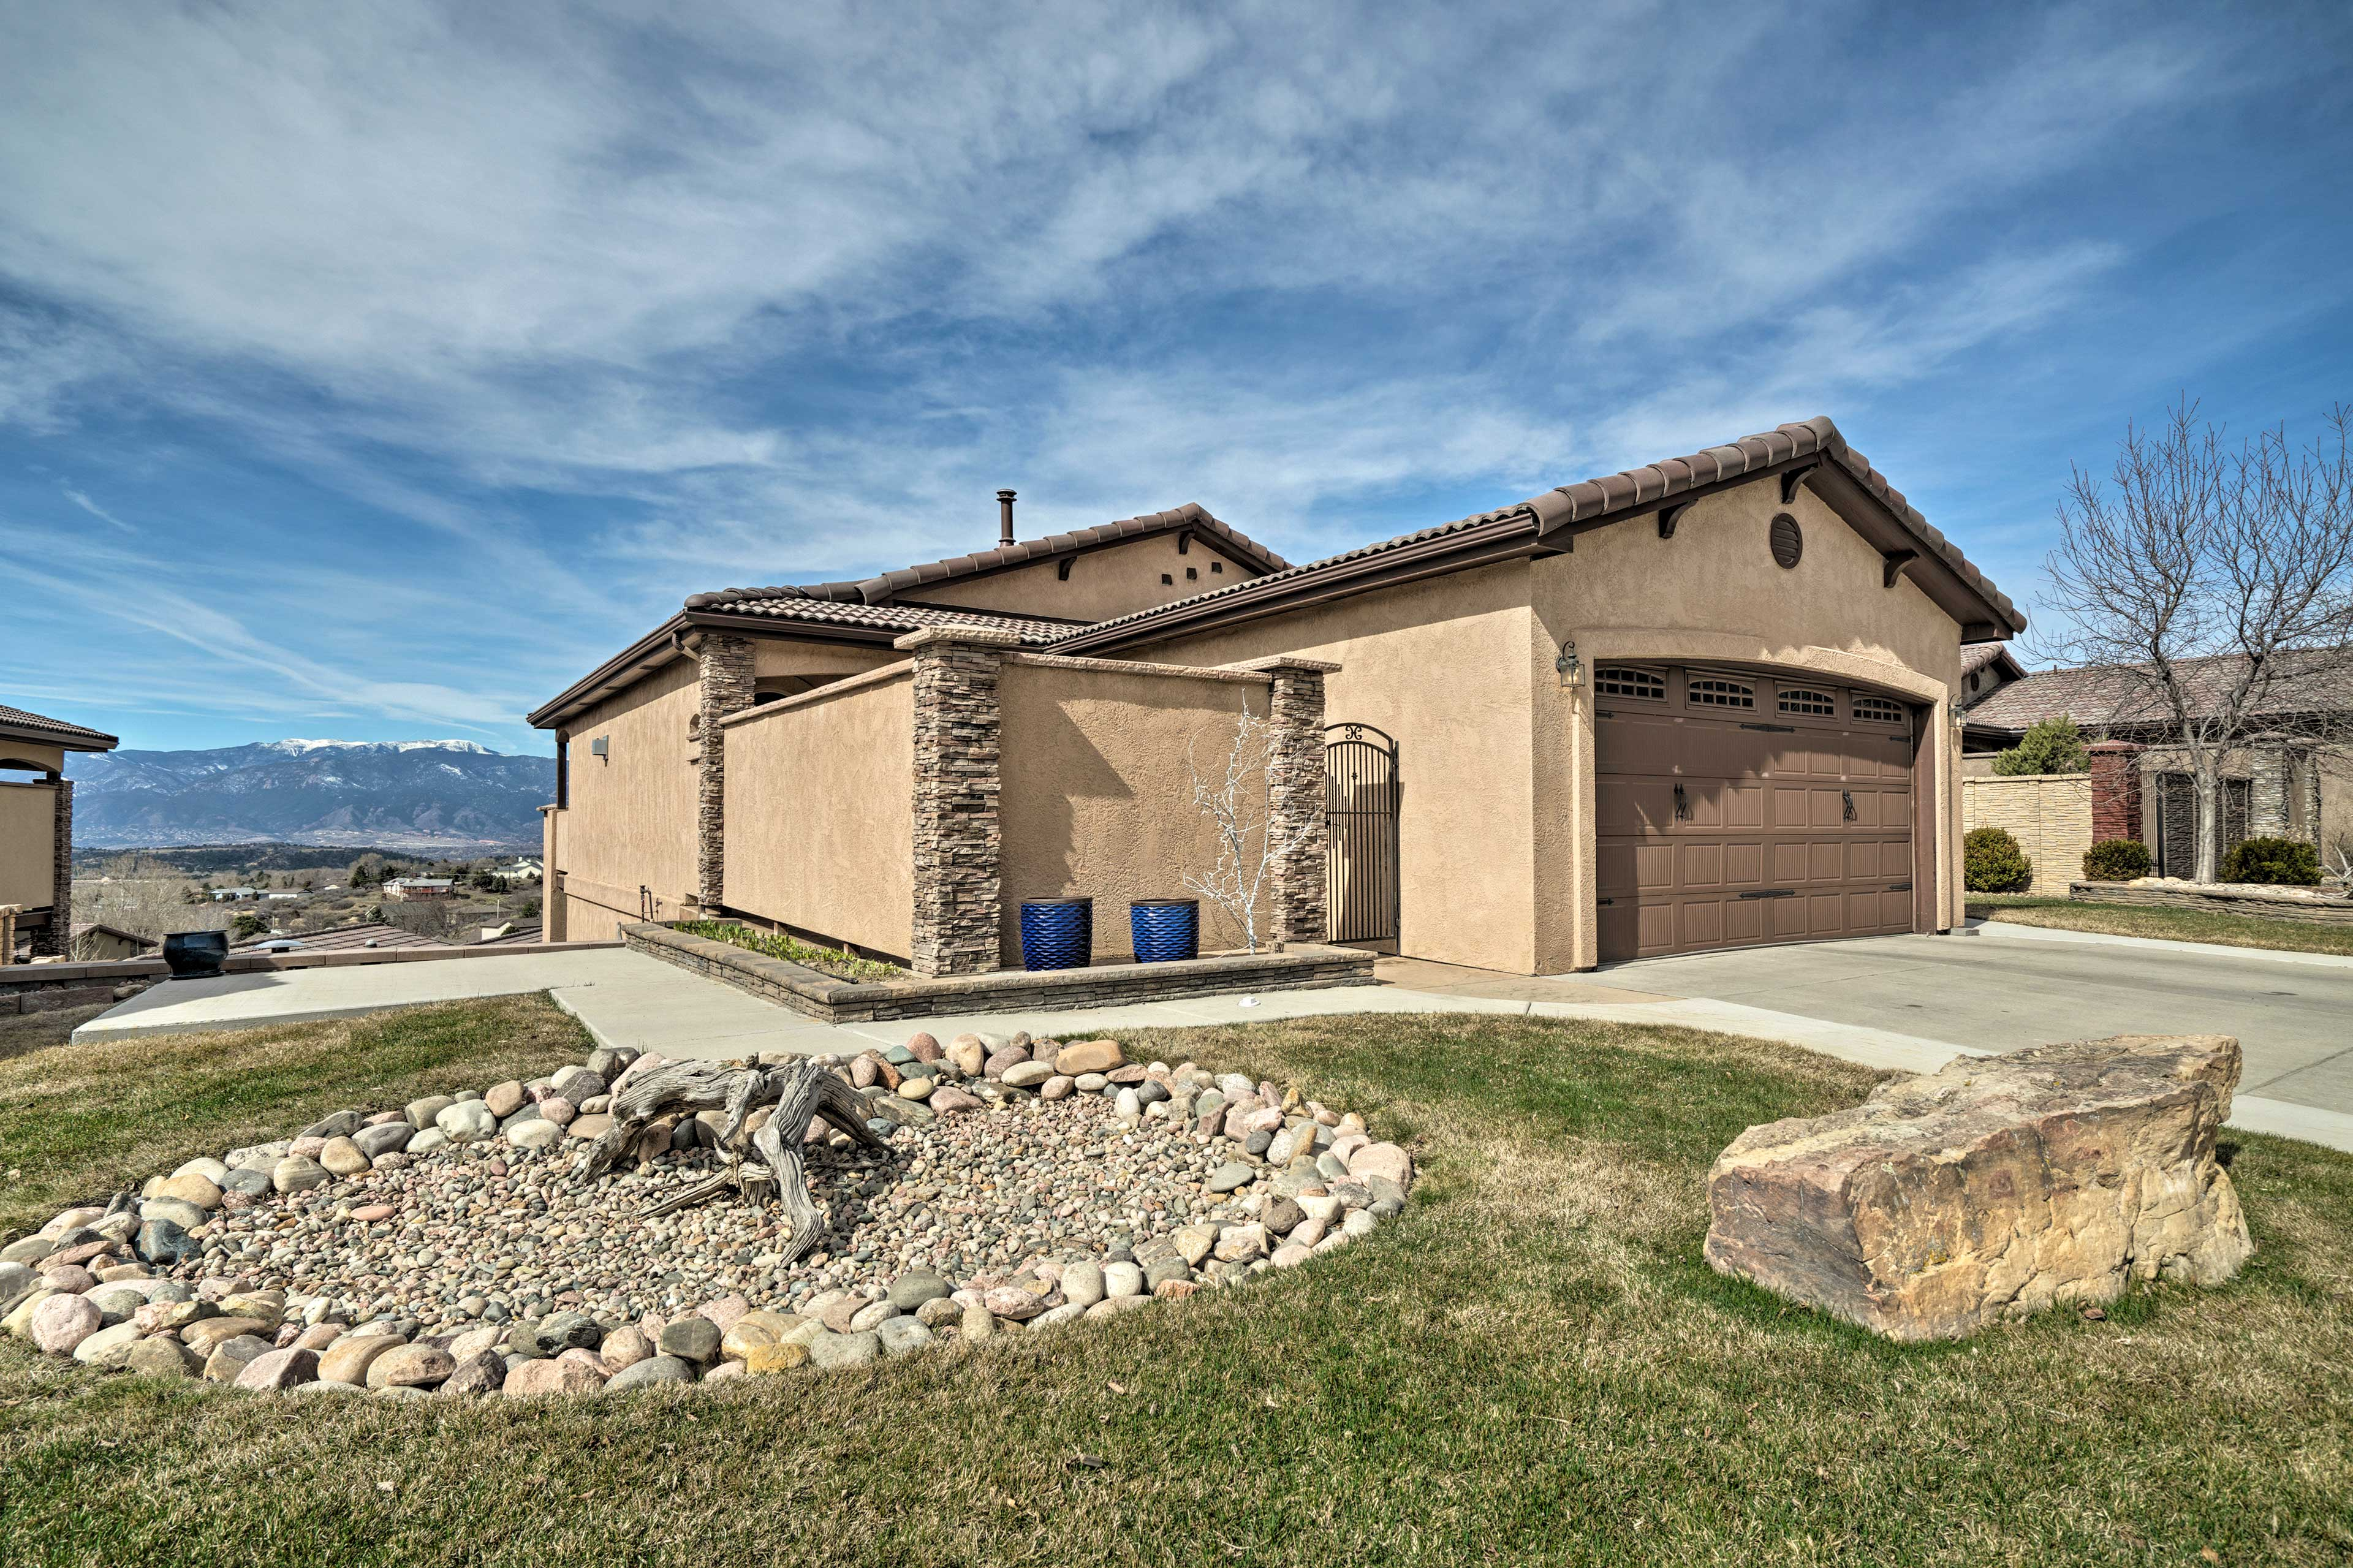 Discover Rocky Mountain bliss at this 4-bedroom, 3.5-bath Colorado Springs home!